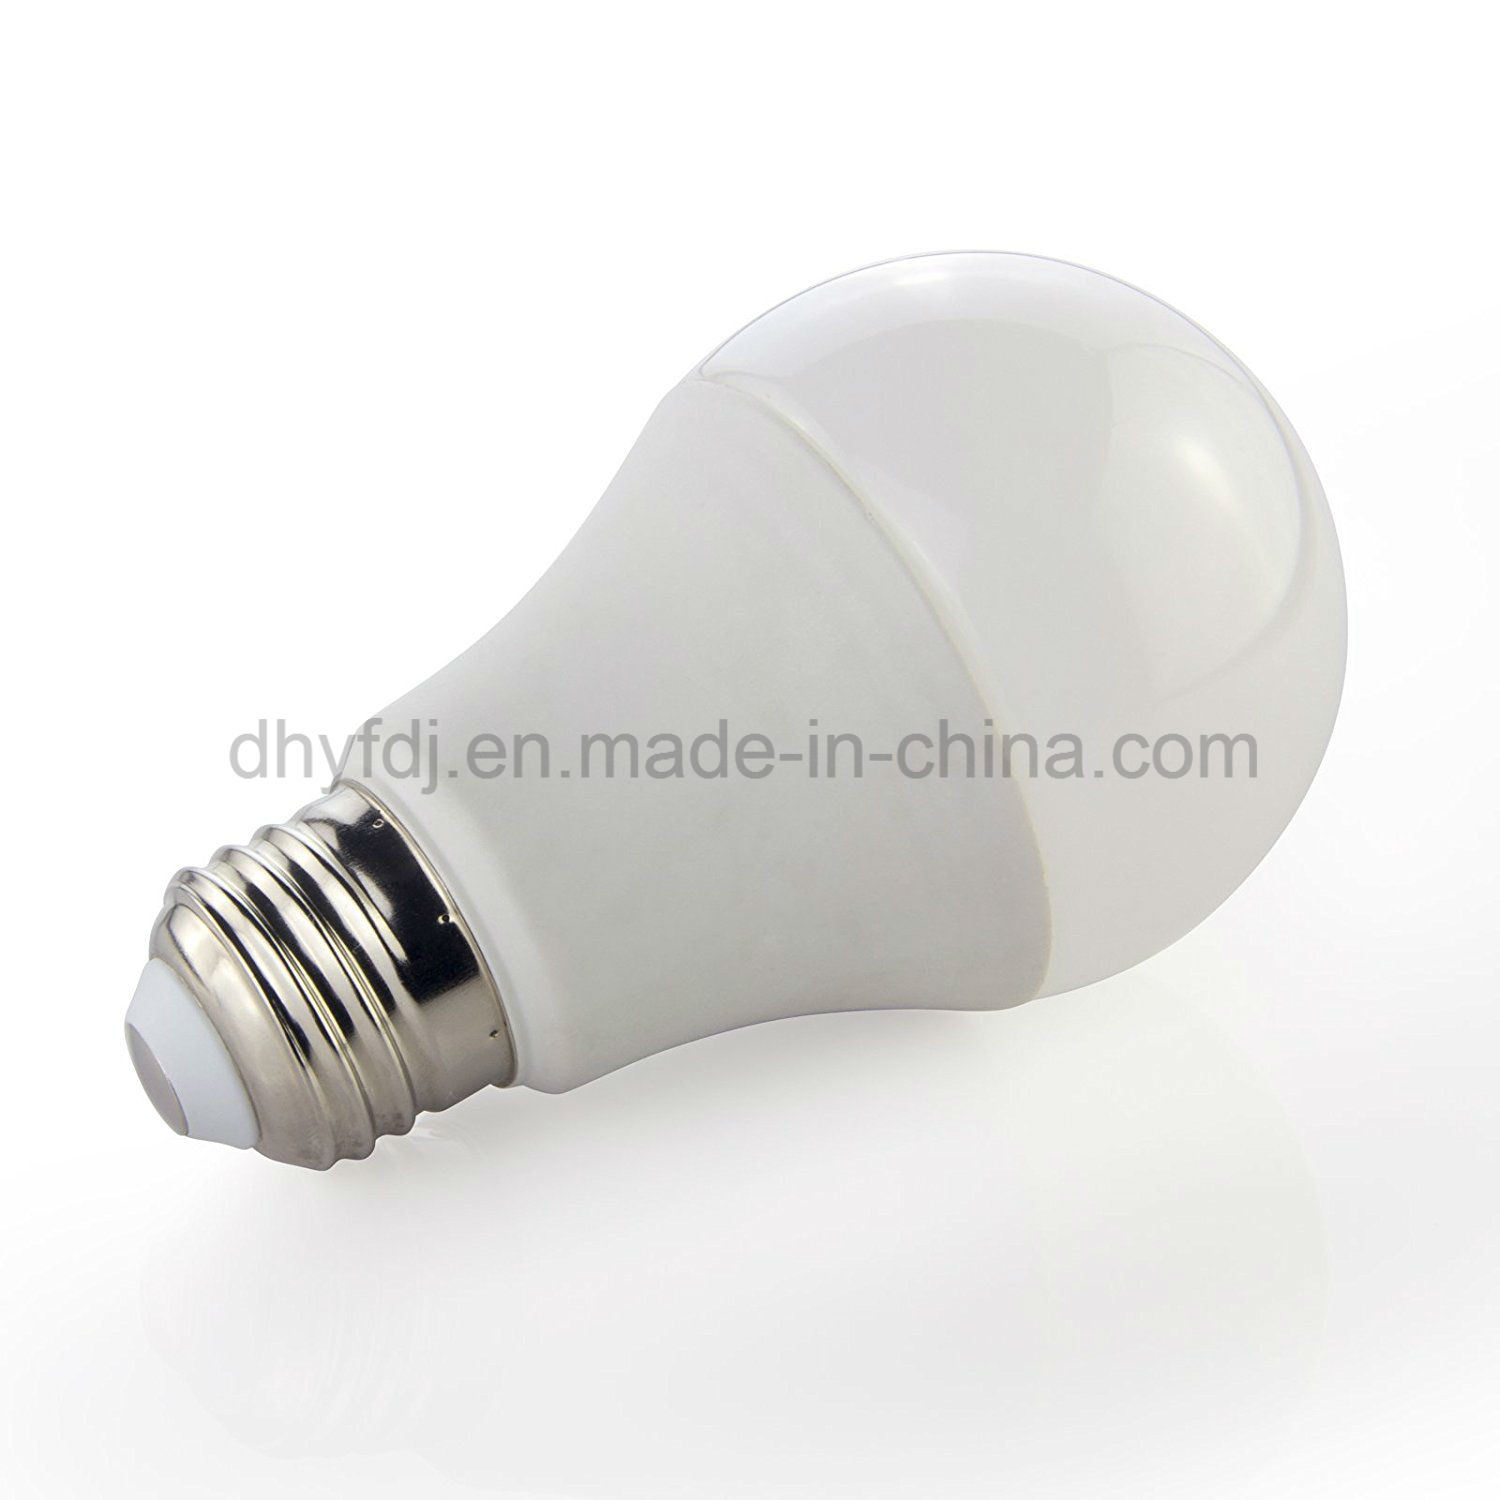 10W A60 SMD LED Energy Saving Natural White Light Bulb Globe Lamp 100 - 250V (Natural White)